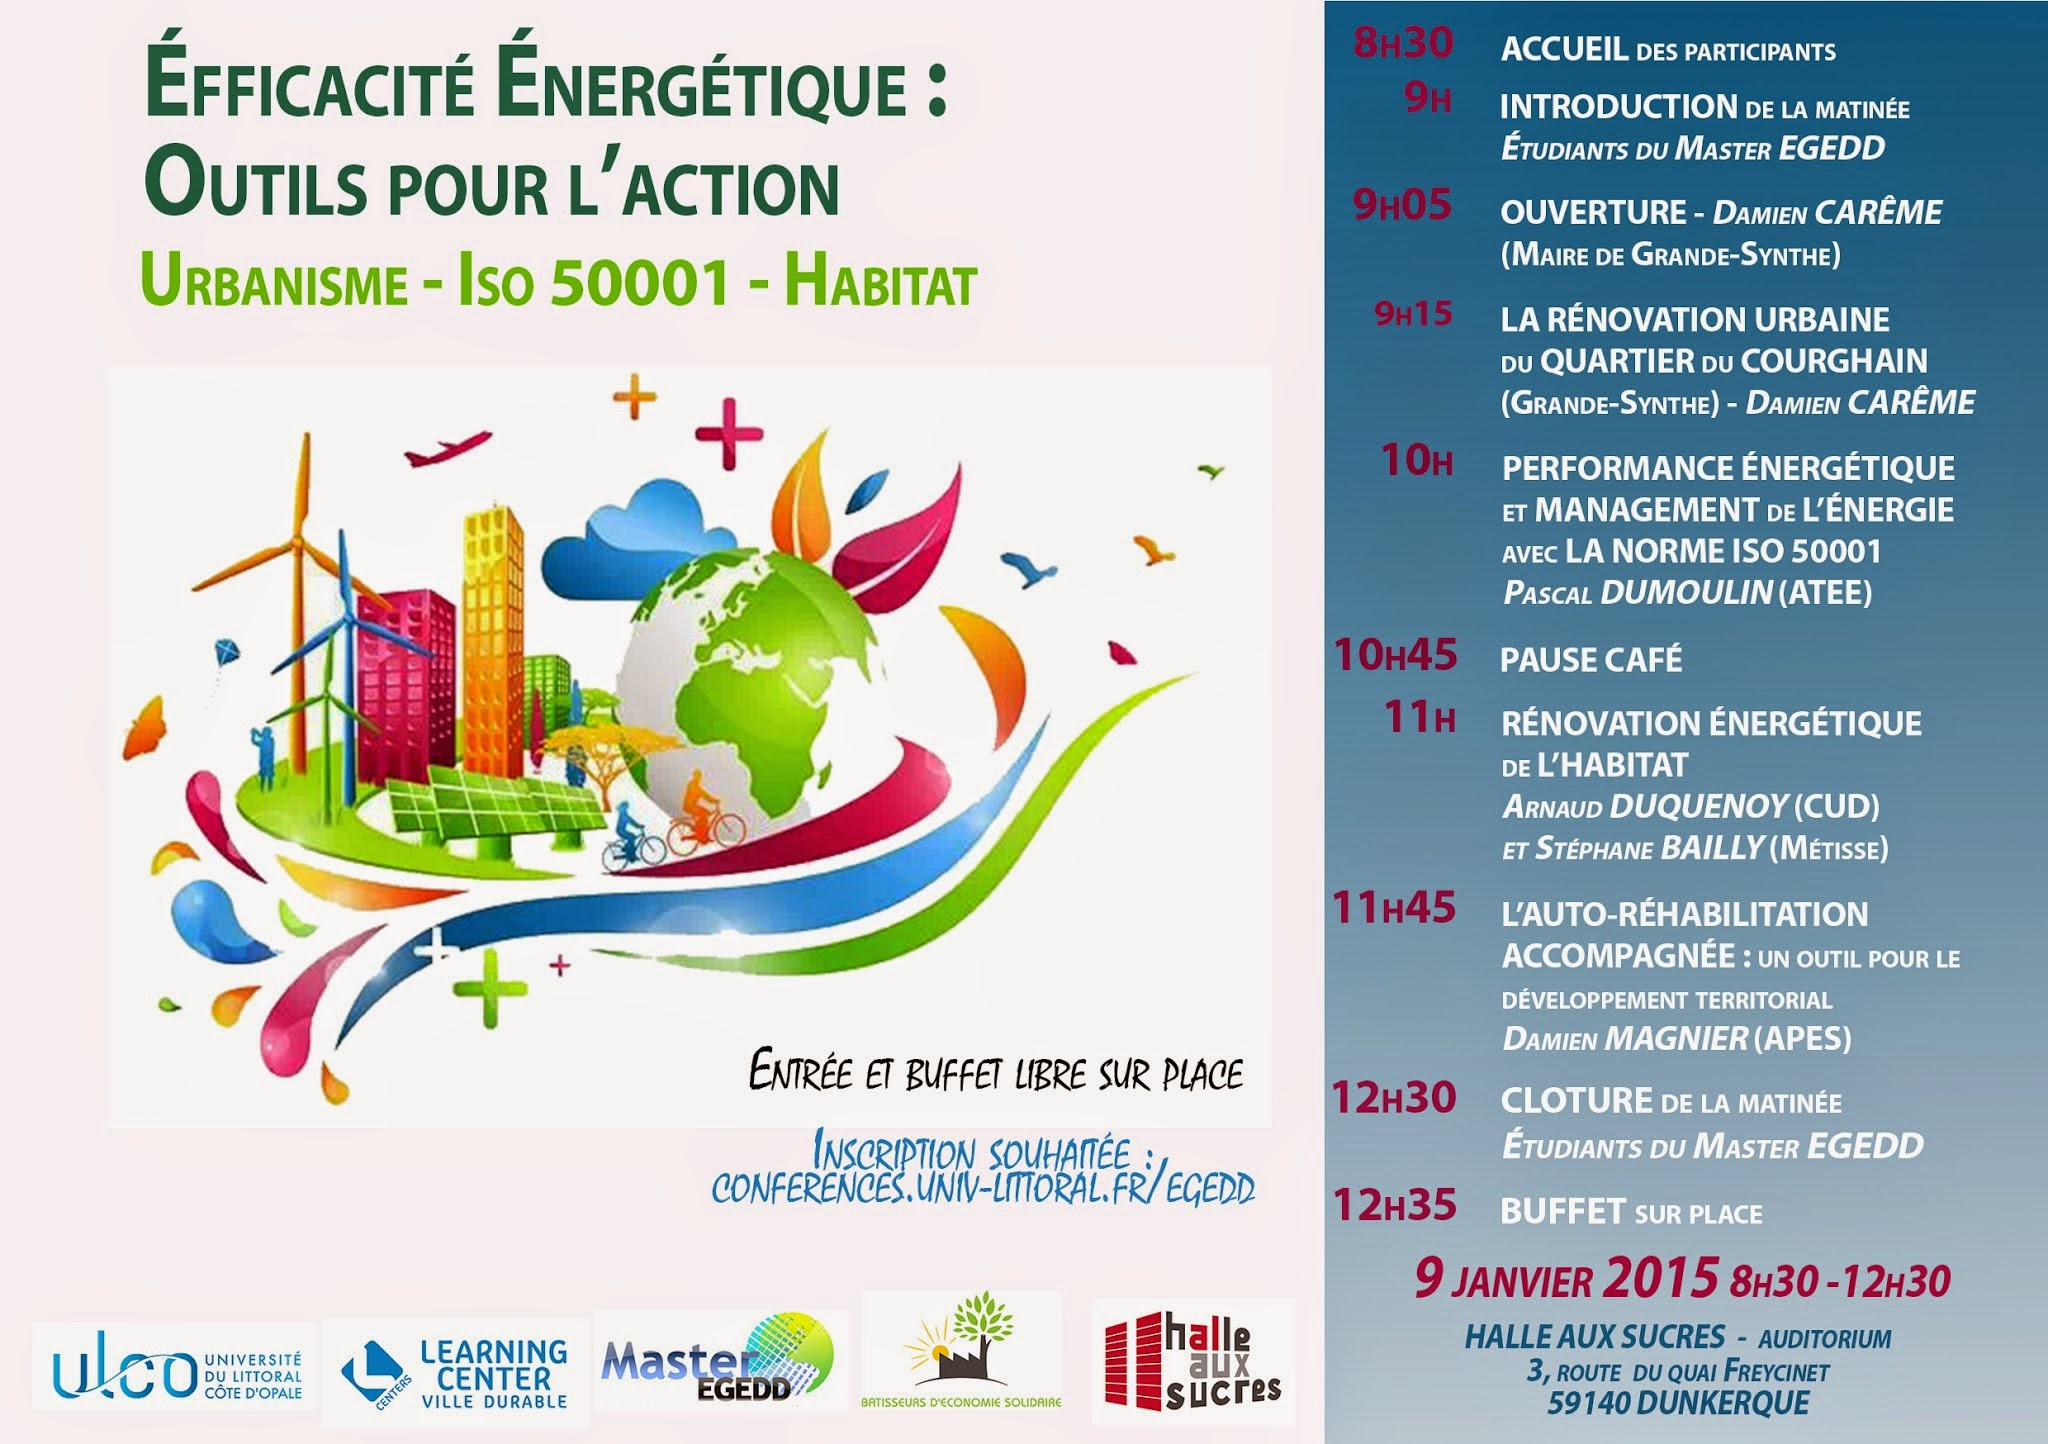 affiche-flyer-efficacite-energetique.jpg